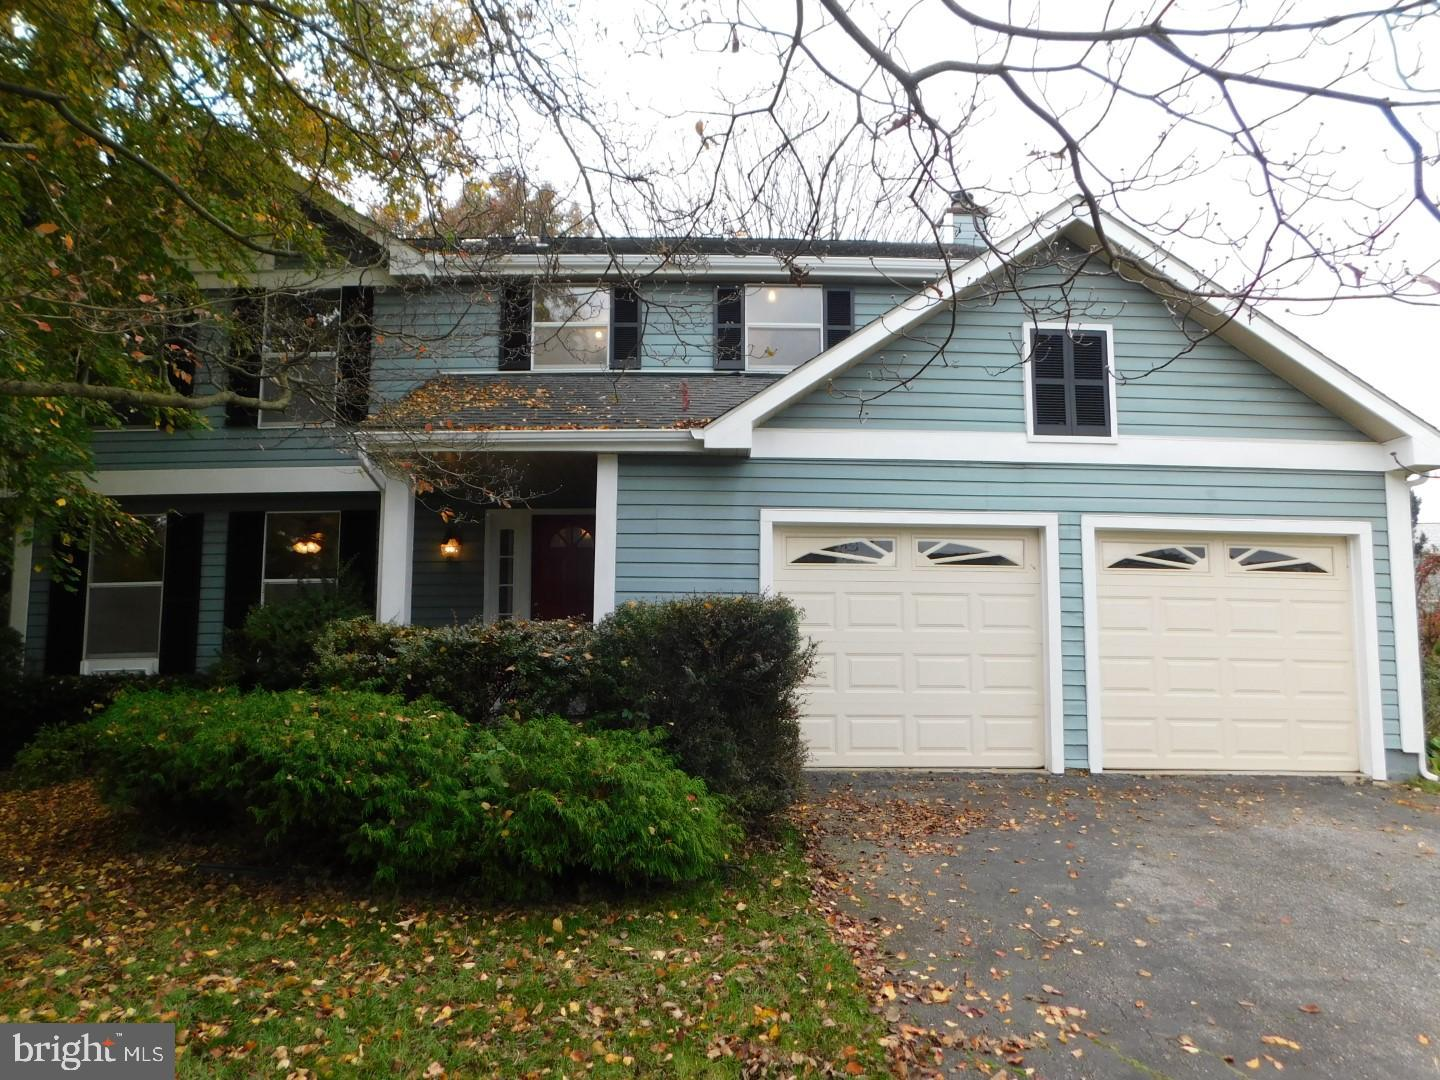 Price To Sell Fast! Desirable 3 Level Colonial, Finished Basement, 2 Car Garage, Spacious Open Kitch